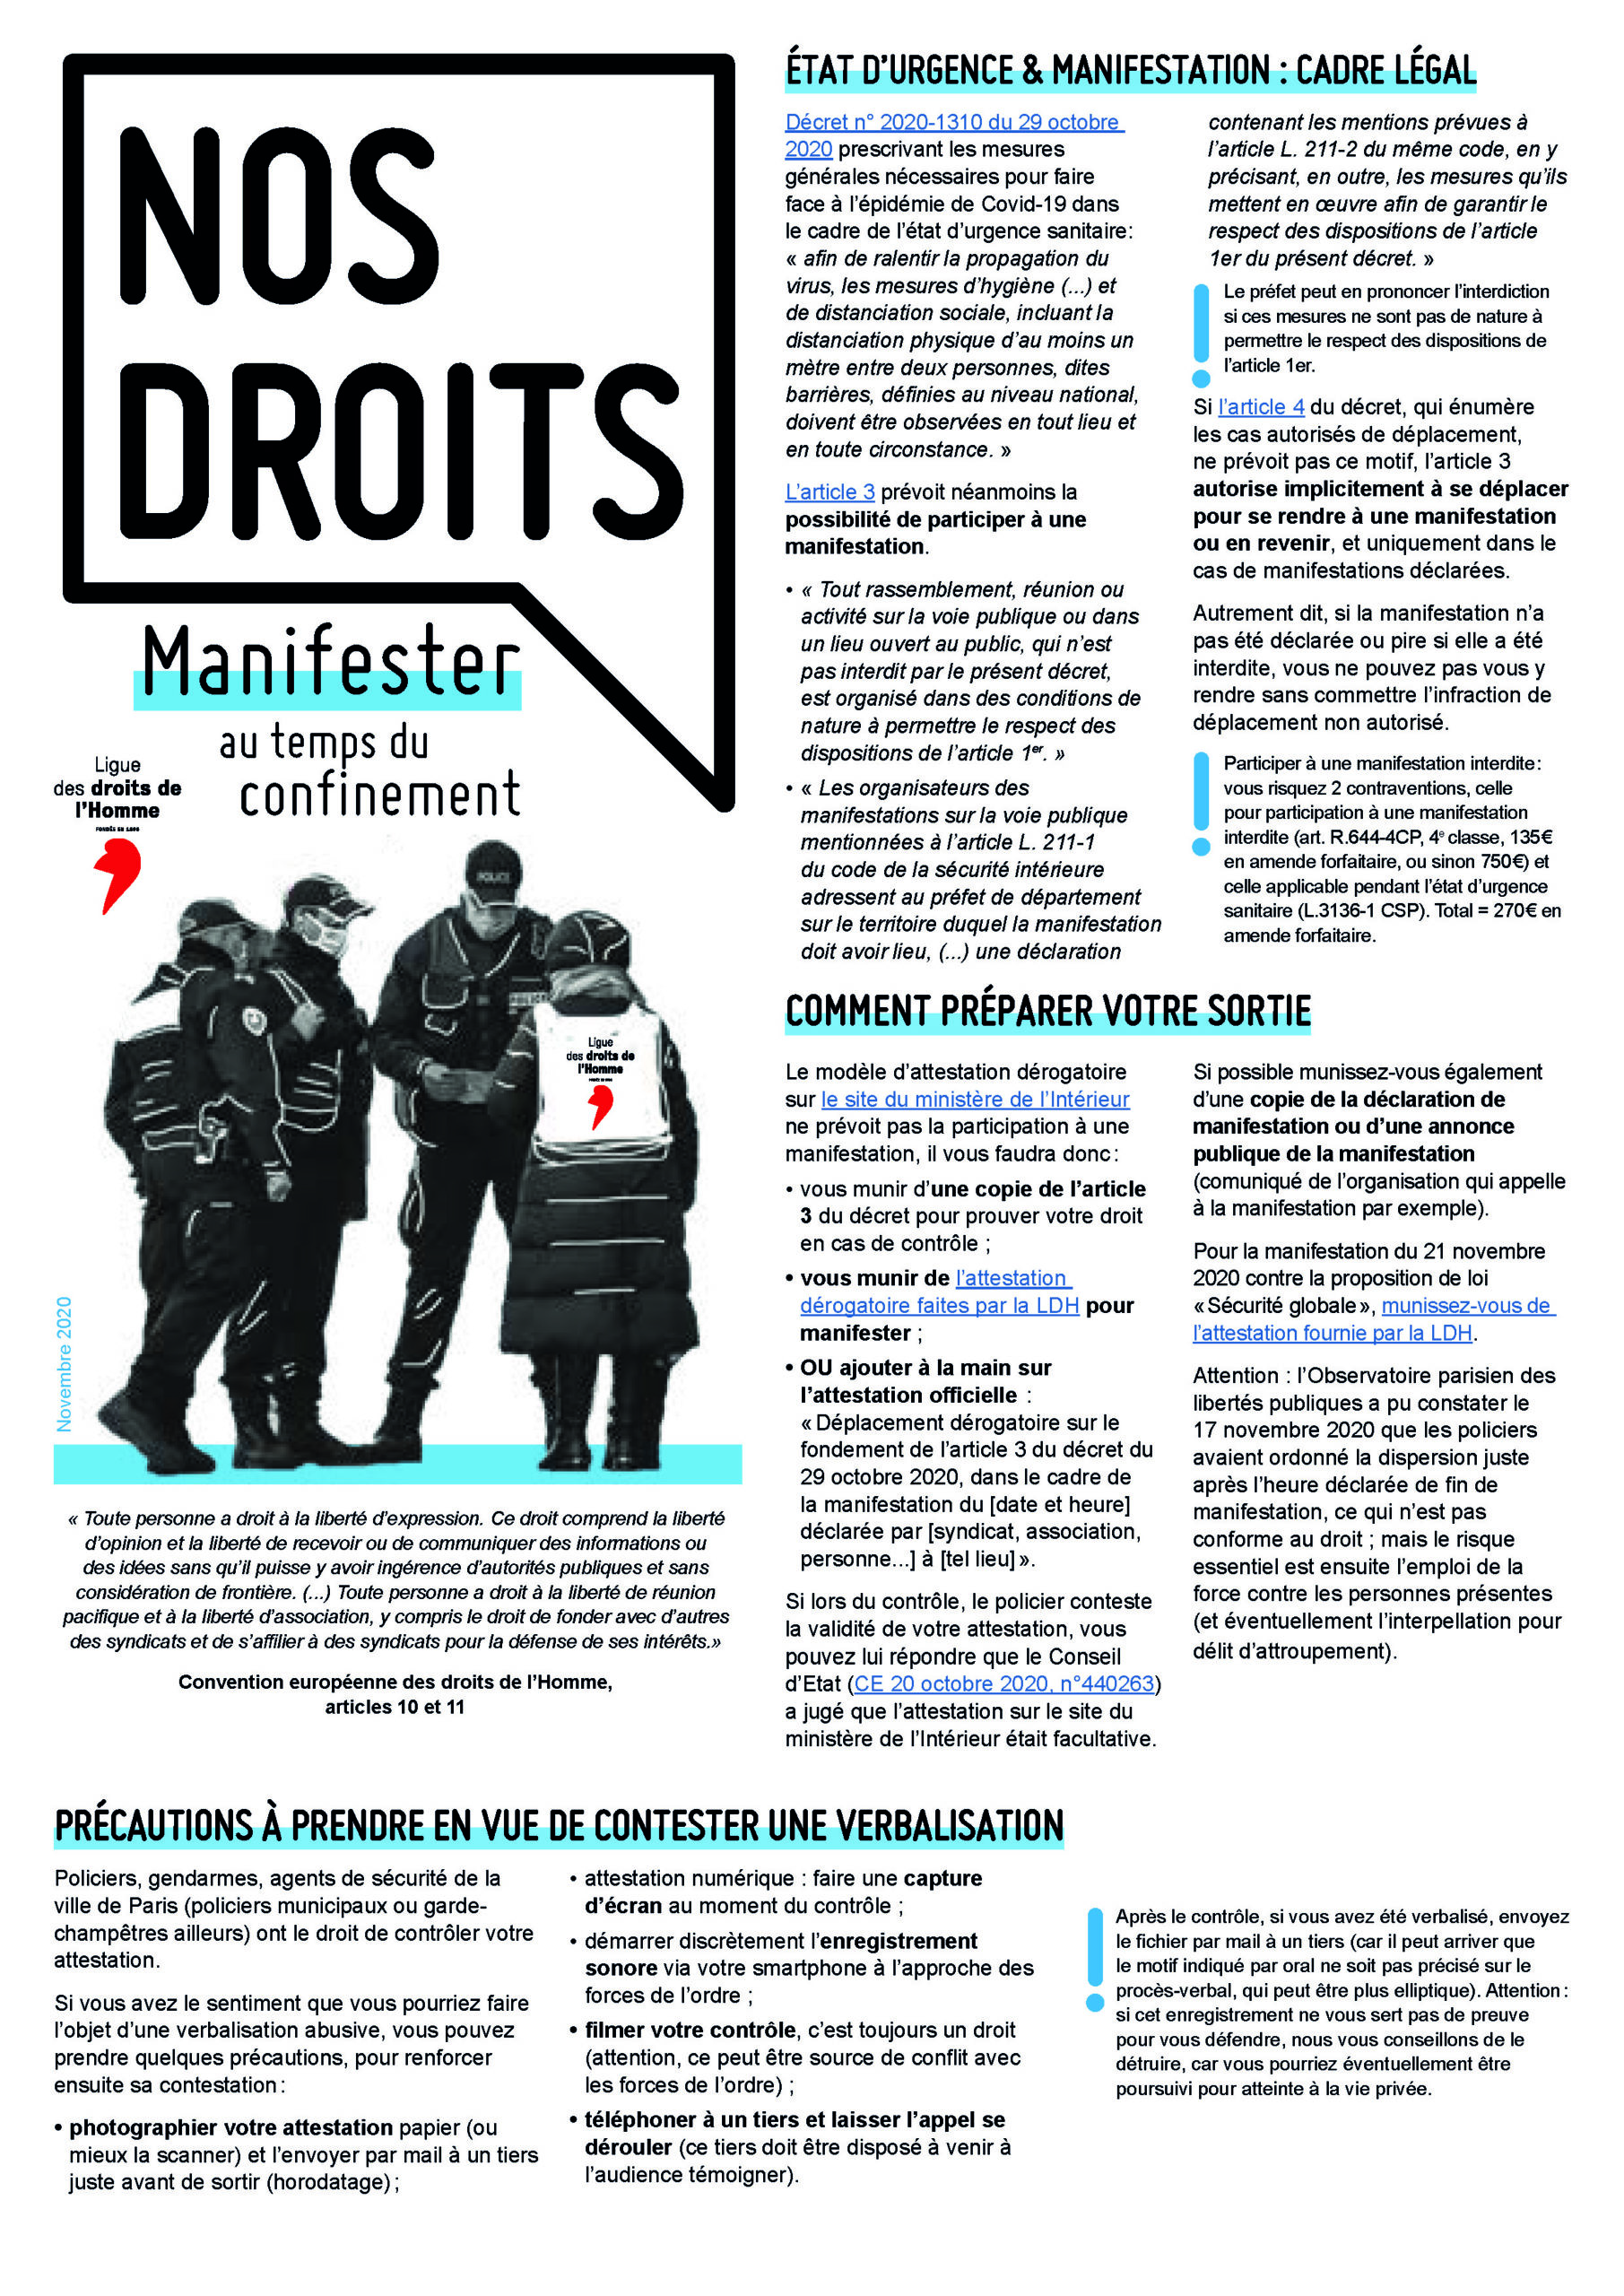 Nos-droits-en-manifestation-confinement-19.11.2020 (2)